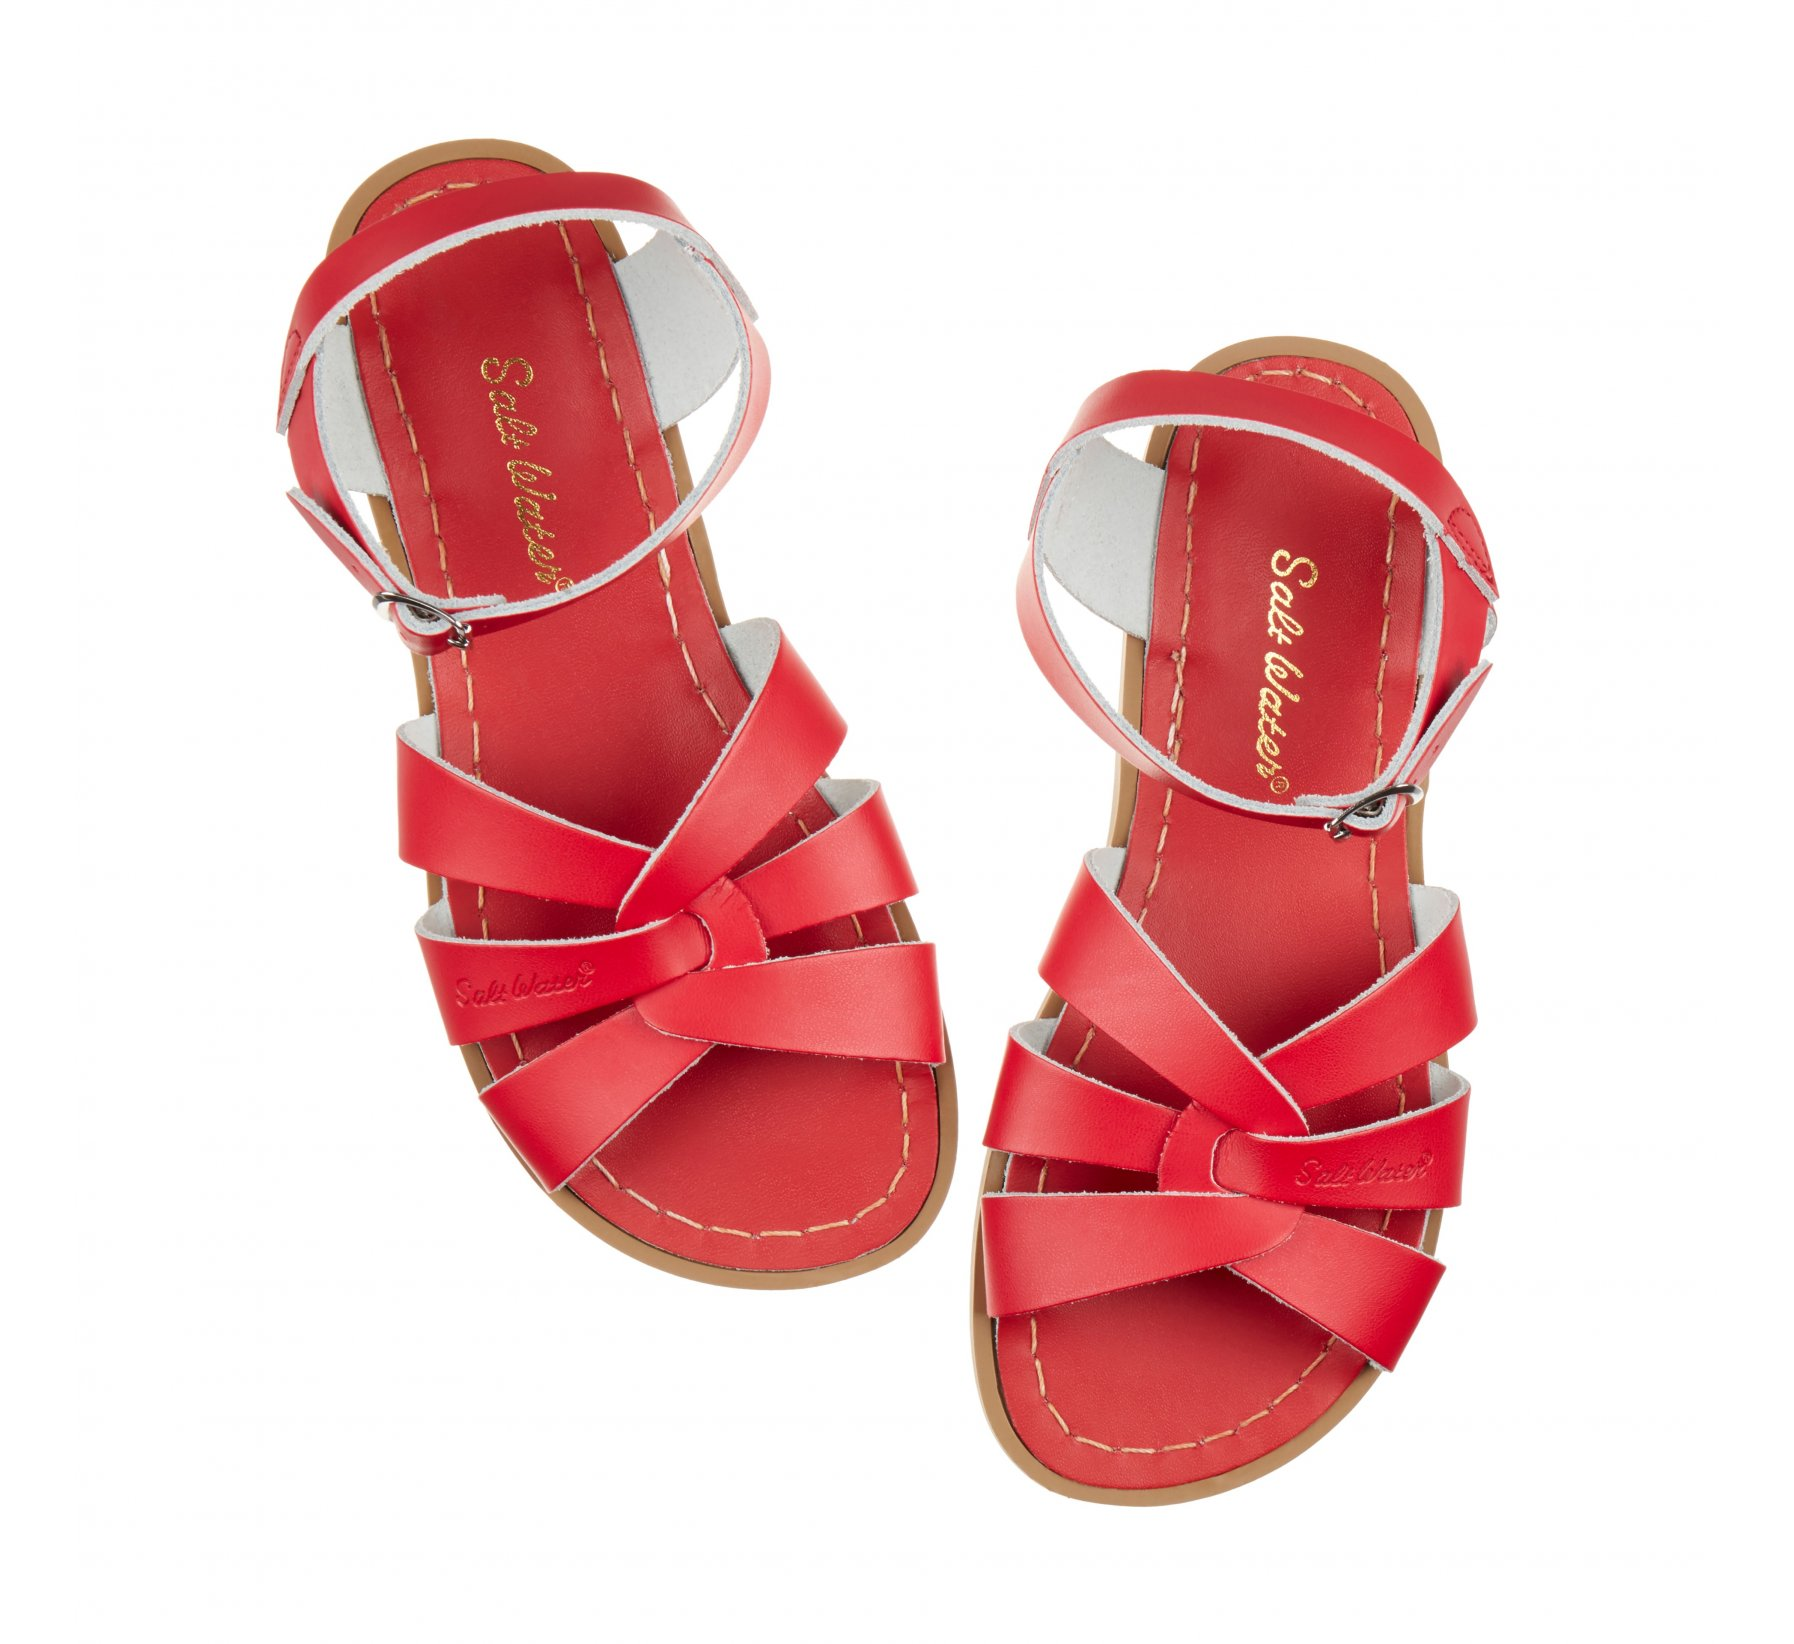 Original Rouge - Salt Water Sandals